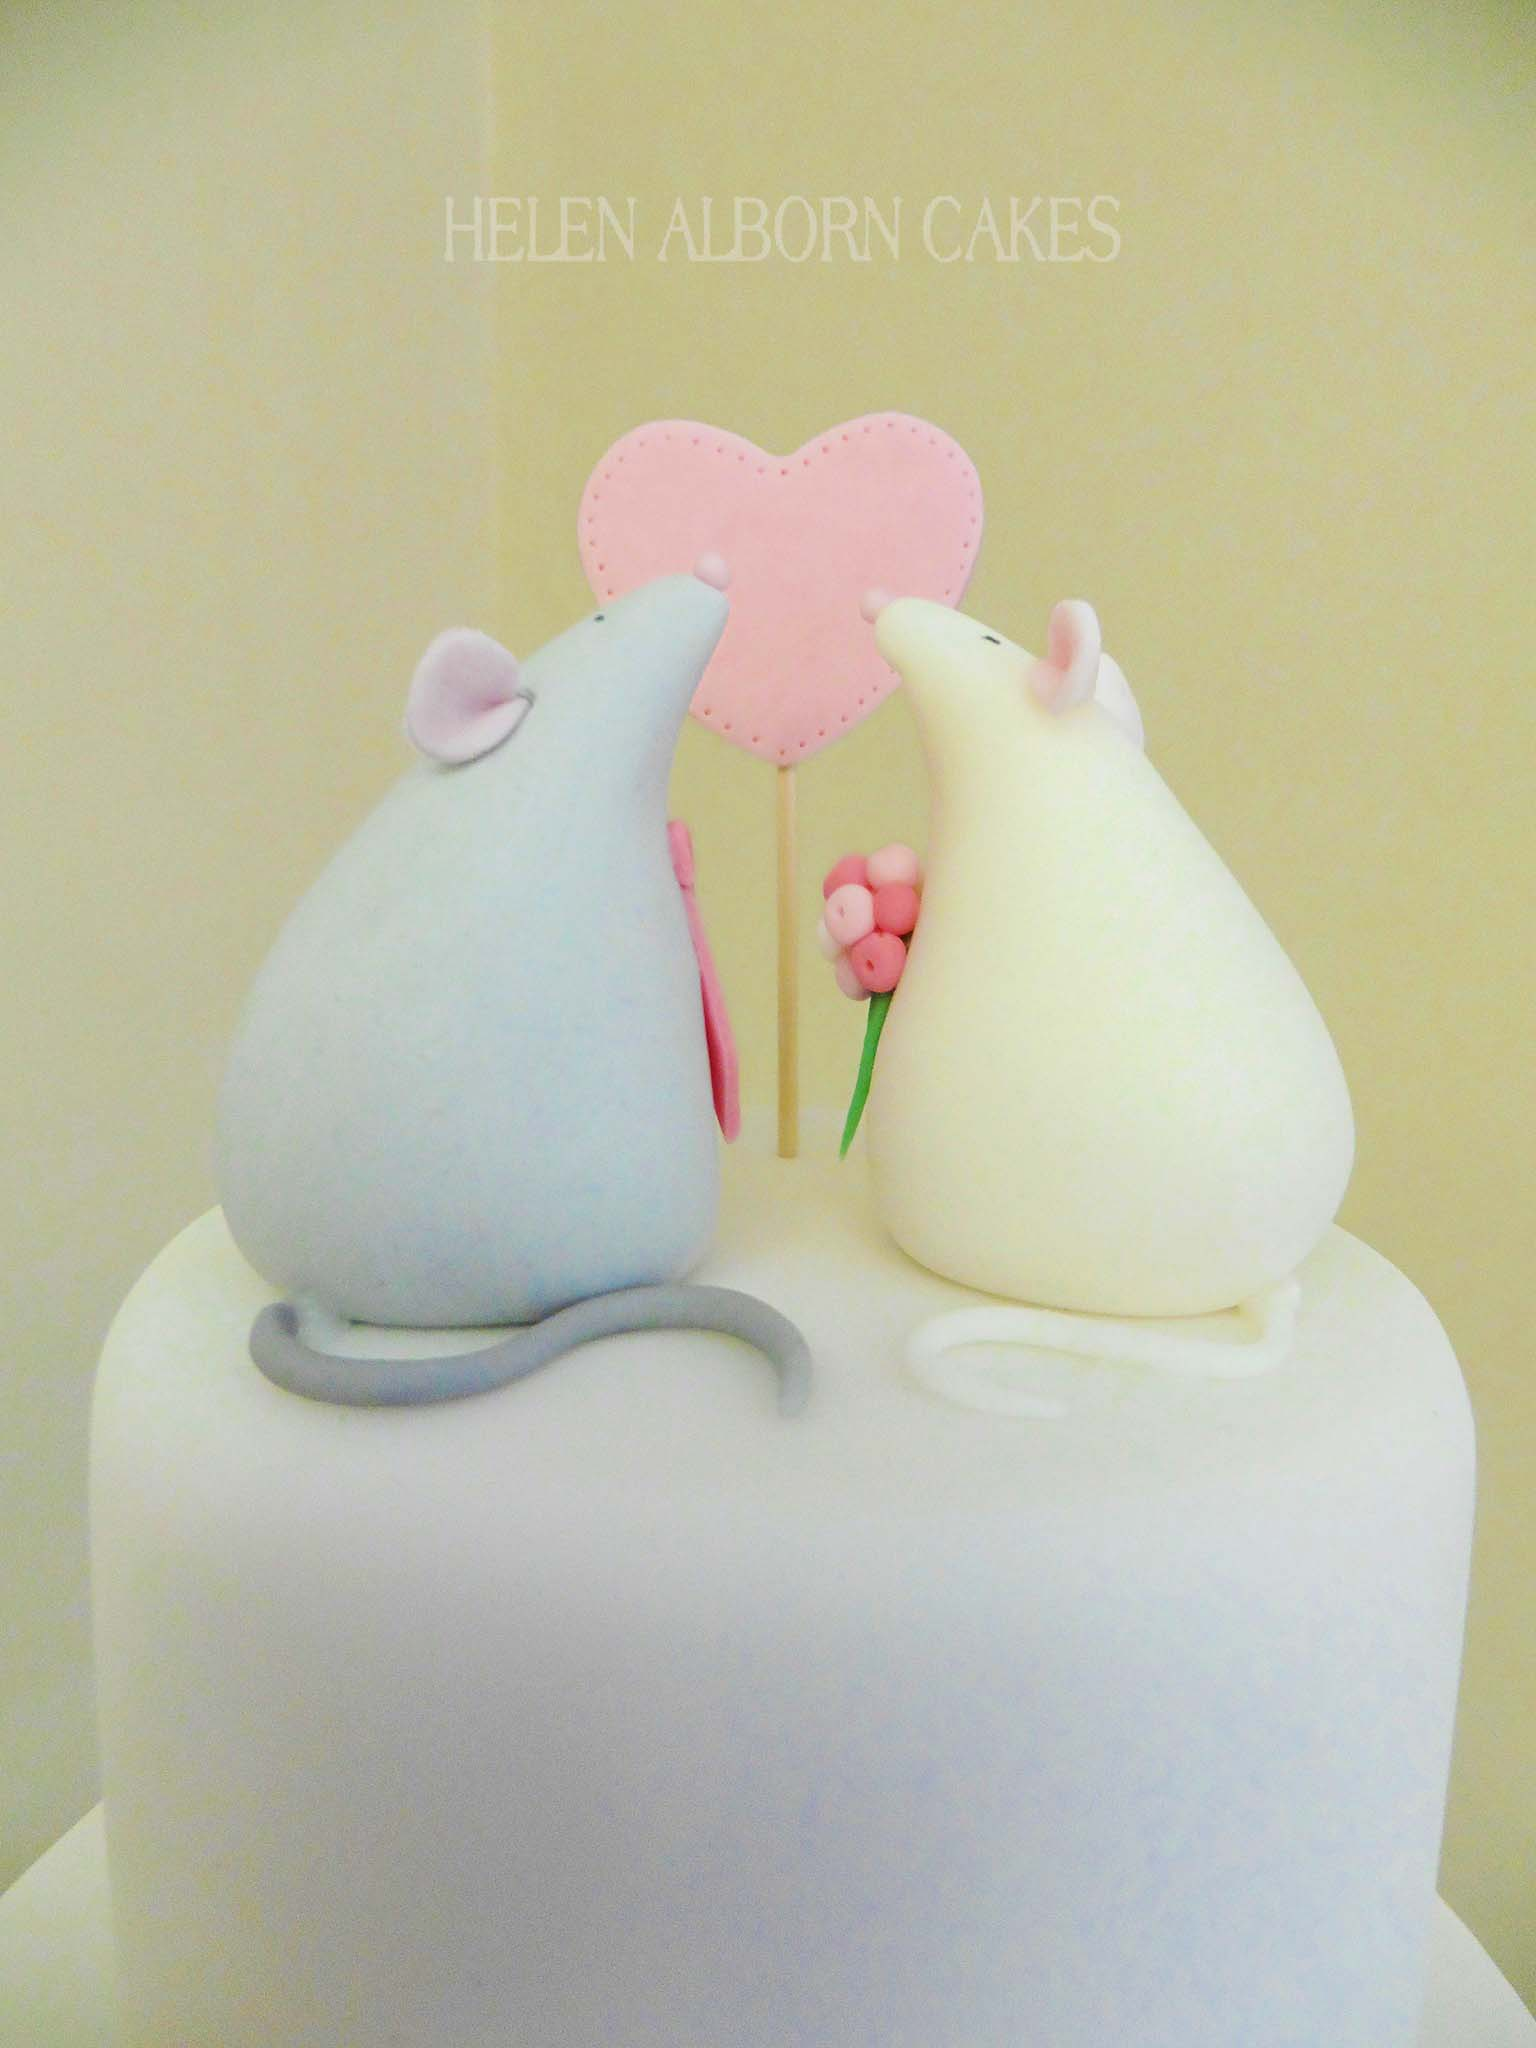 Mice Wedding Cake by Helen Alborn Cakes